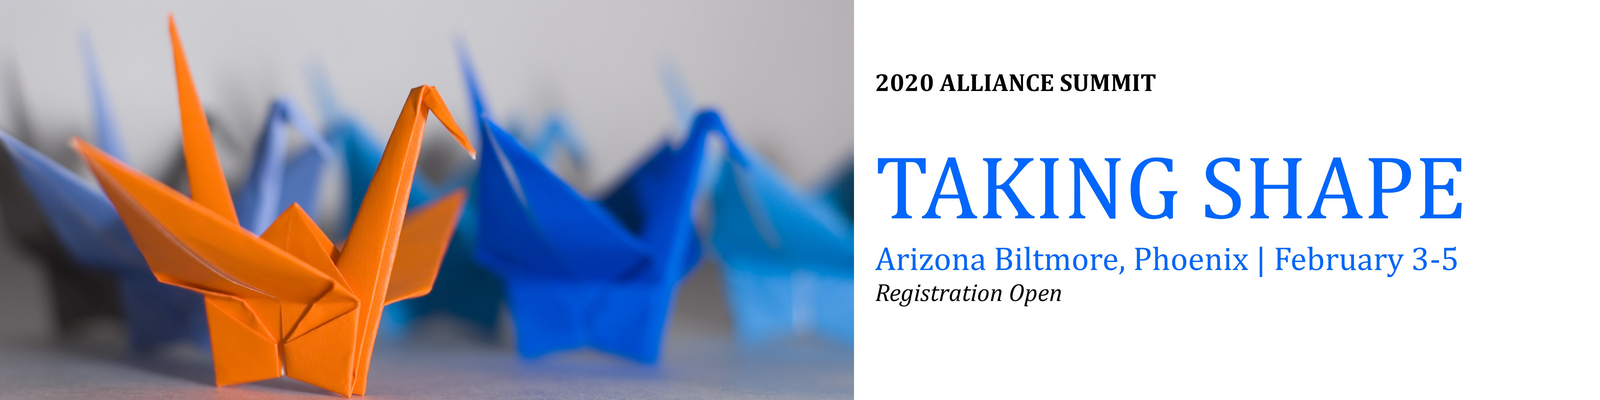 Registration Open - 10th Annual Alliance Summit Feb 3-5 2020 at the Phoenix, Arizona Biltmore